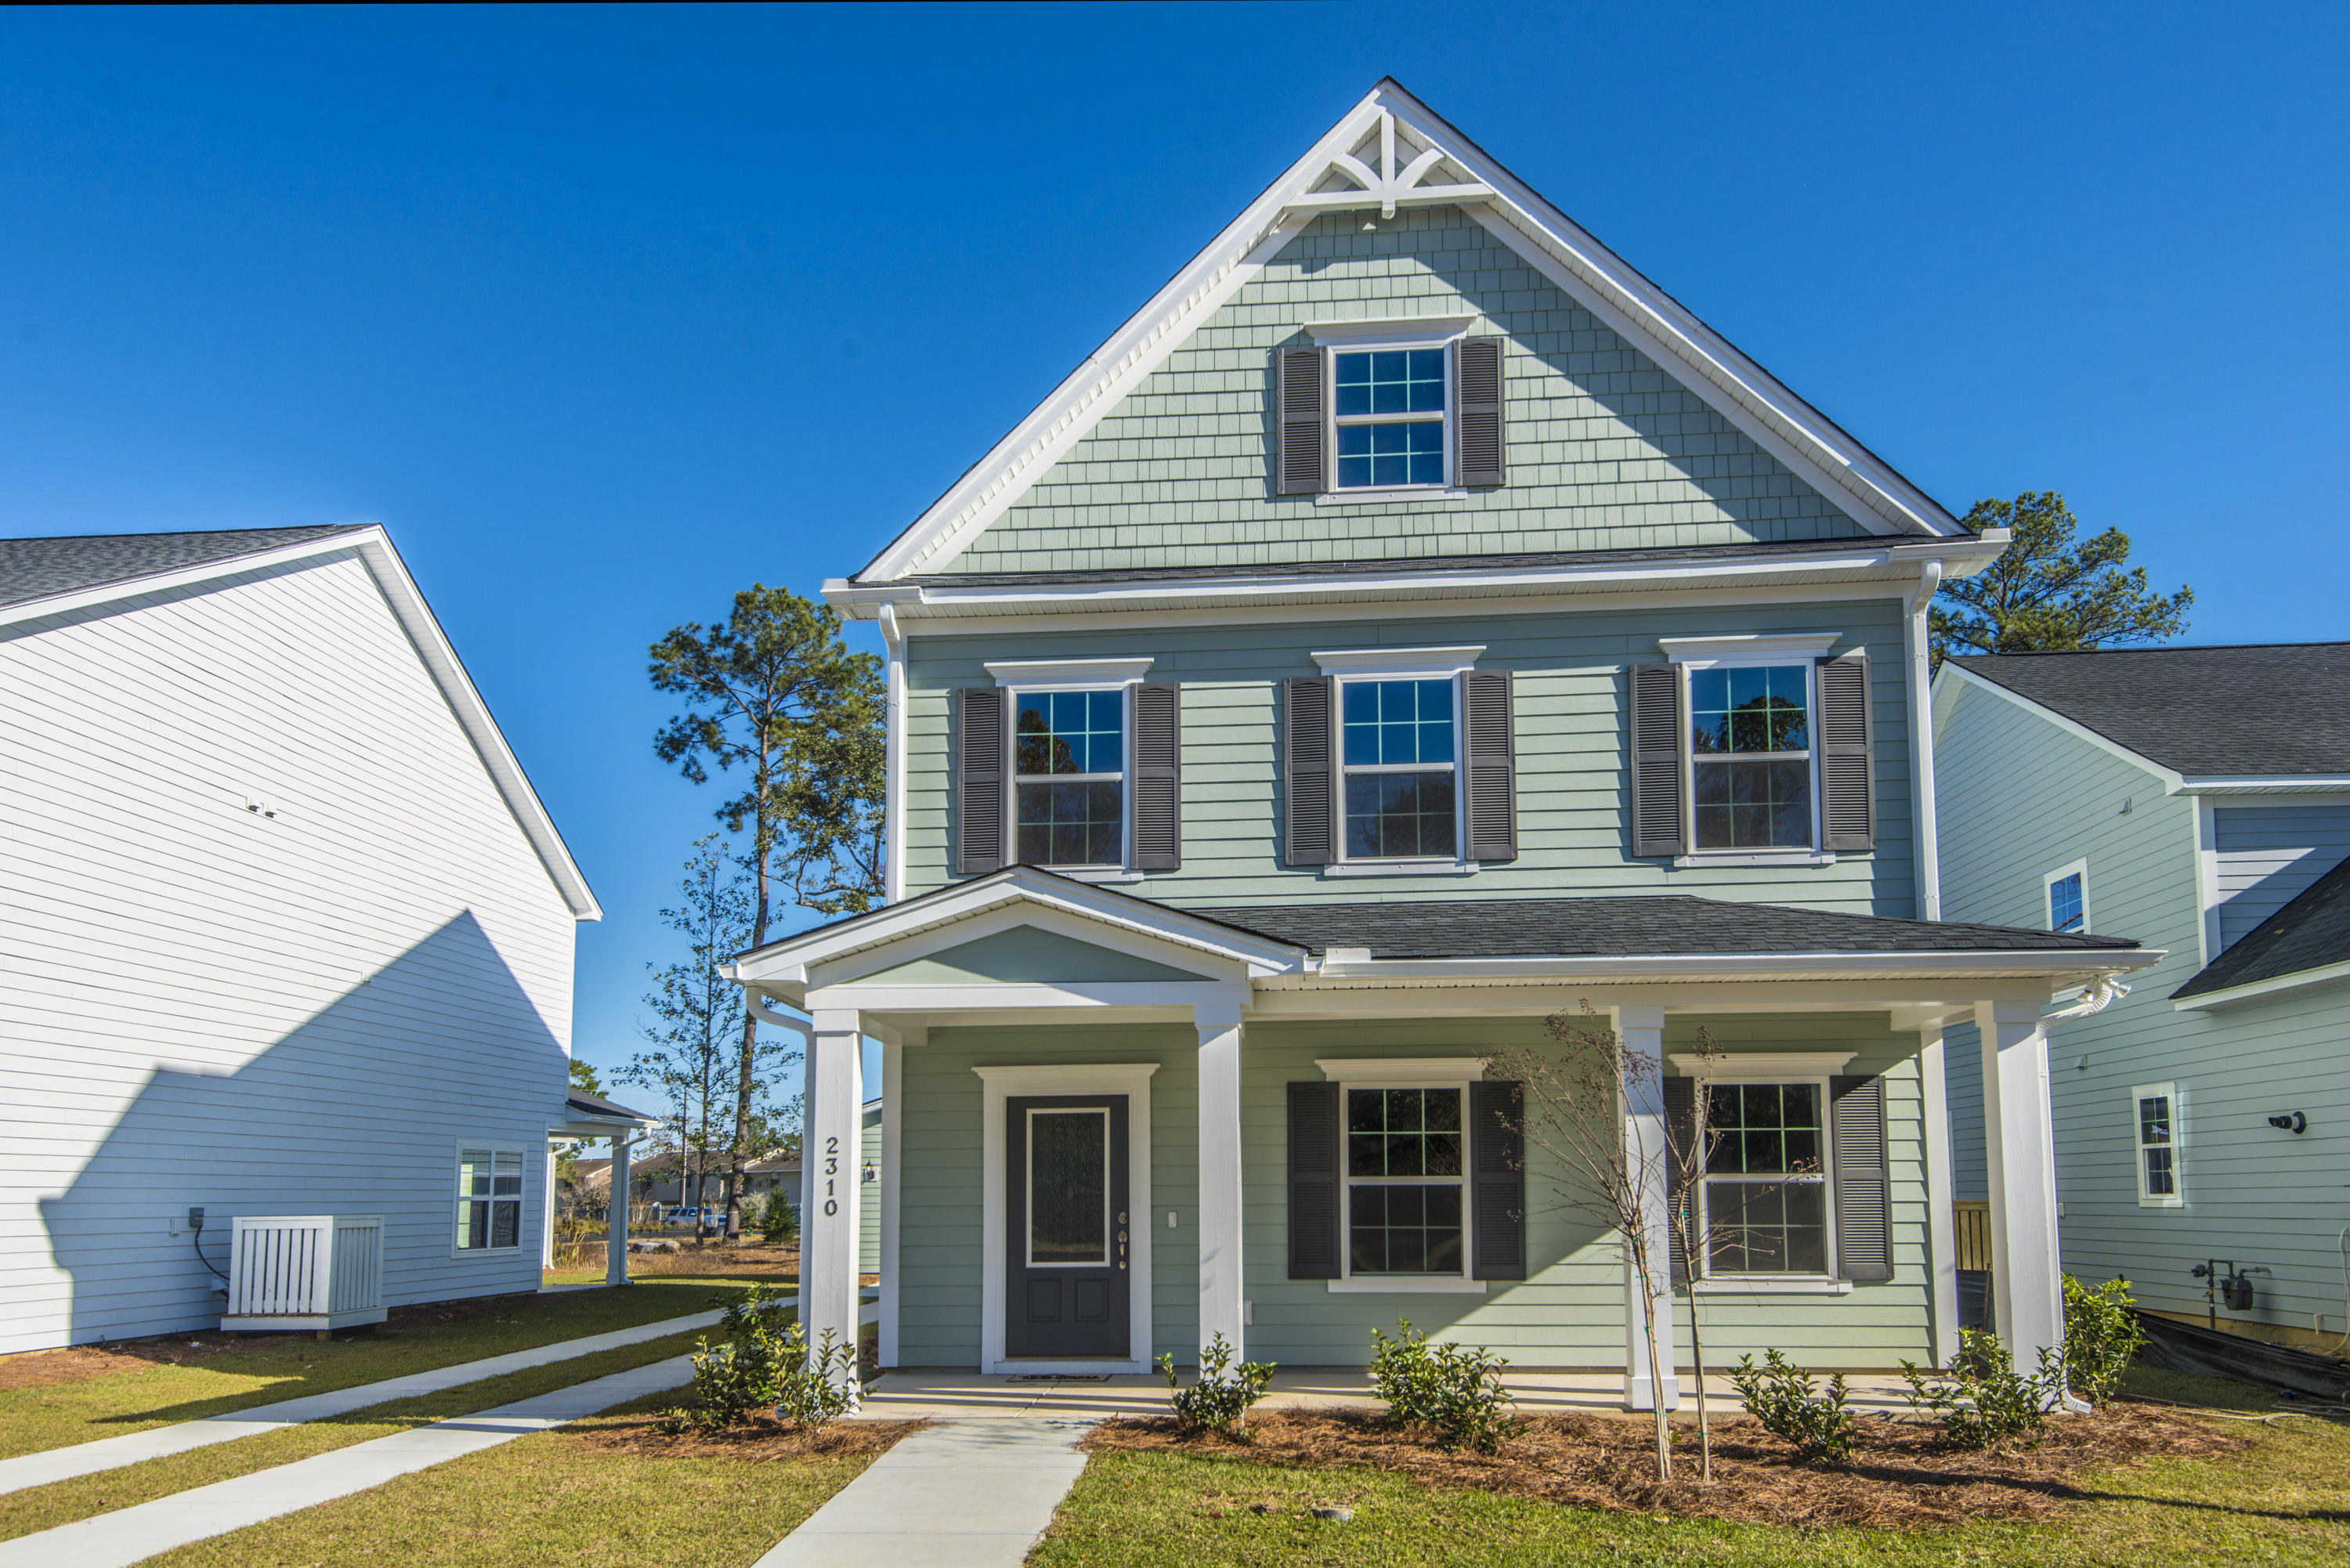 Church Creek Landing Homes For Sale - 2310 Town Woods, Charleston, SC - 8